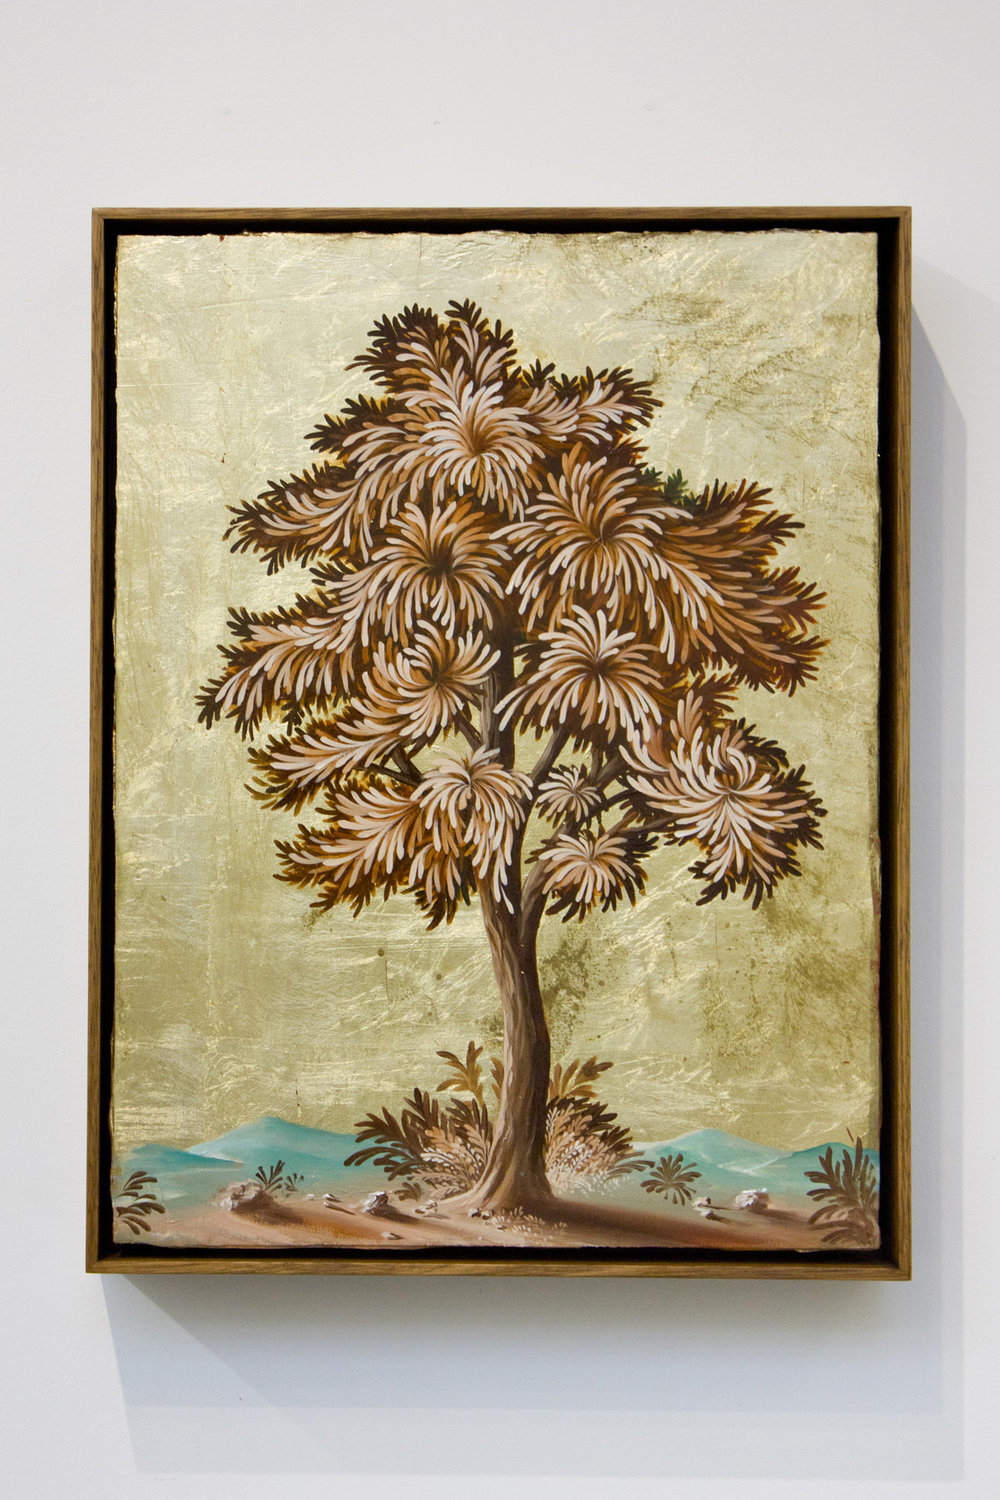 PETER DAVERINGTON   Portrait of a Tree #5  2017 Oil and gold leaf on panel 41 x 31 cm Frame: 43 x 33 cm